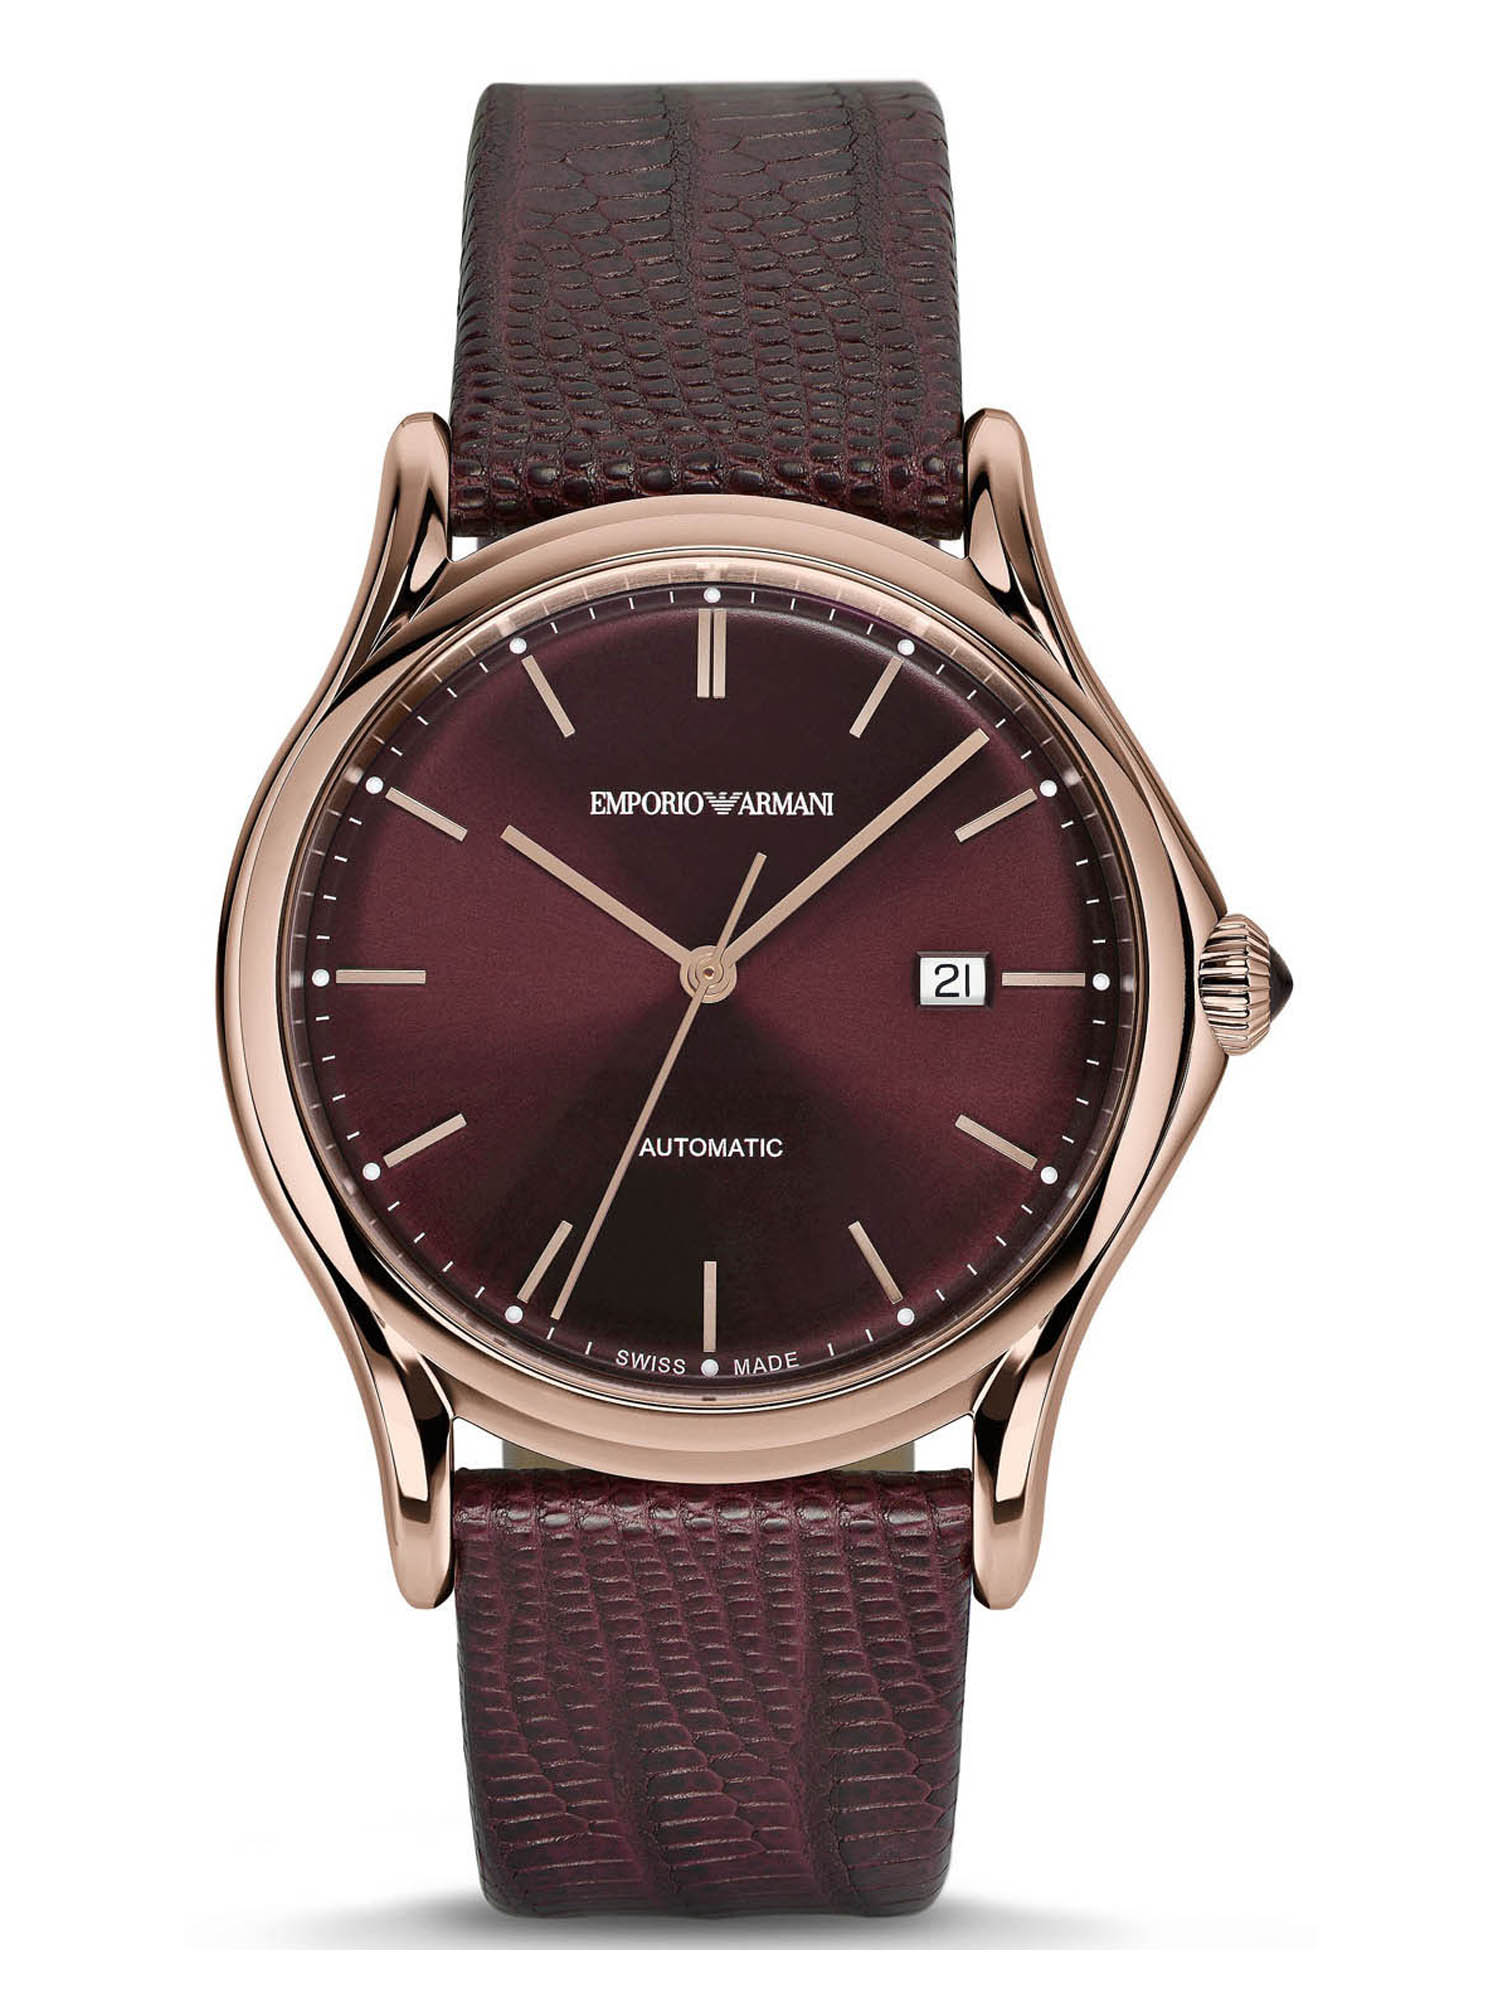 Emporio Armani ARS3018 Burgundy Dial Leather Strap Automatic Women's Watch